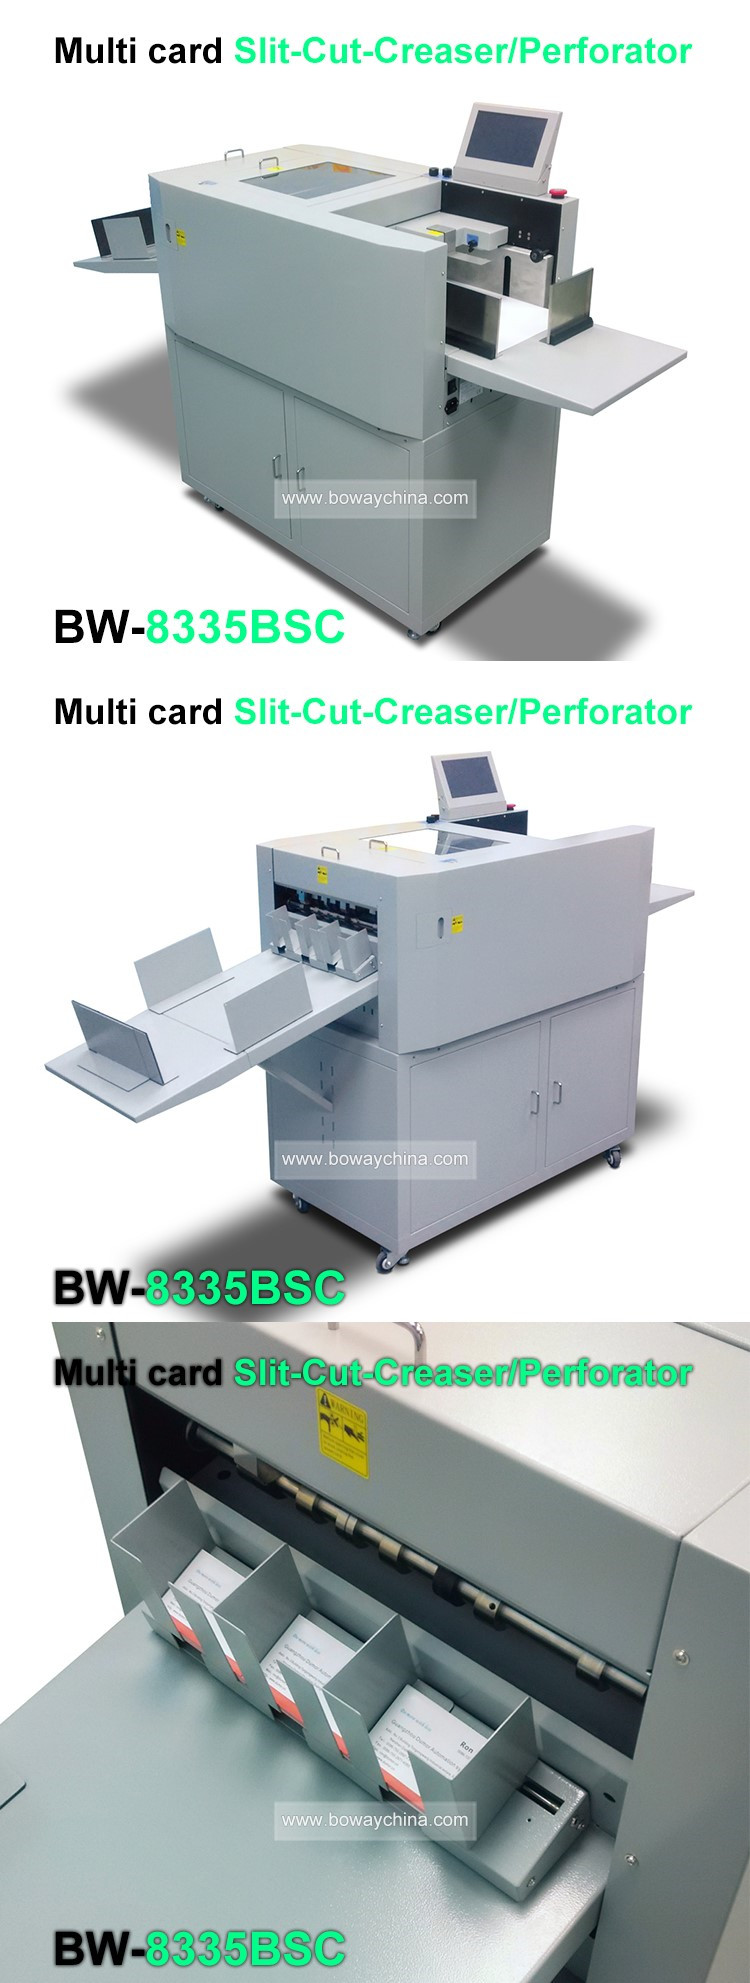 8335BSC real machine.jpg